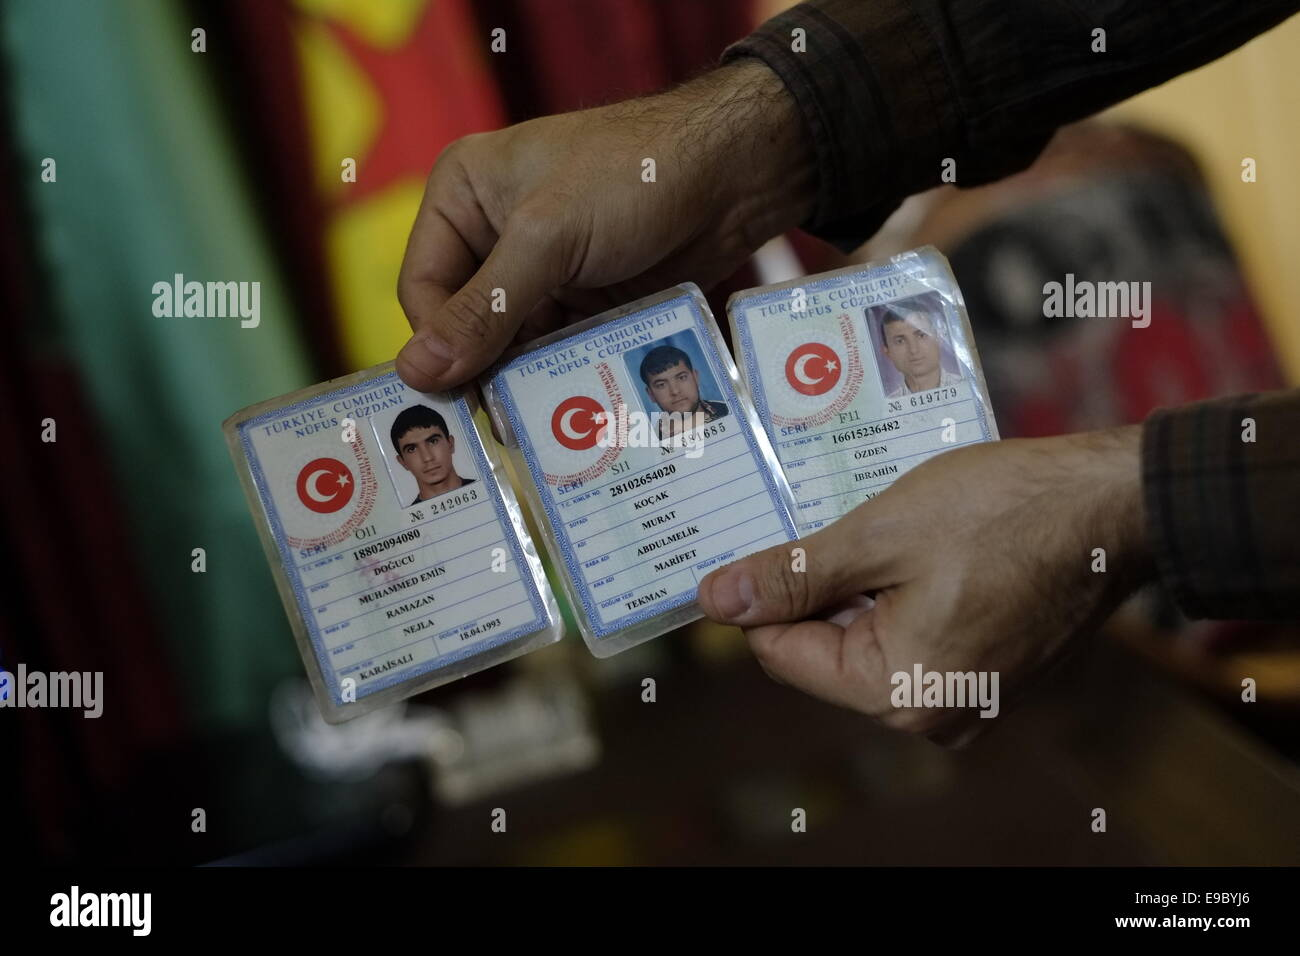 Turkish Identity cards of fighters of Islamic State of Iraq and the Levant ISIS or Daesh captured by Kurdish People's - Stock Image